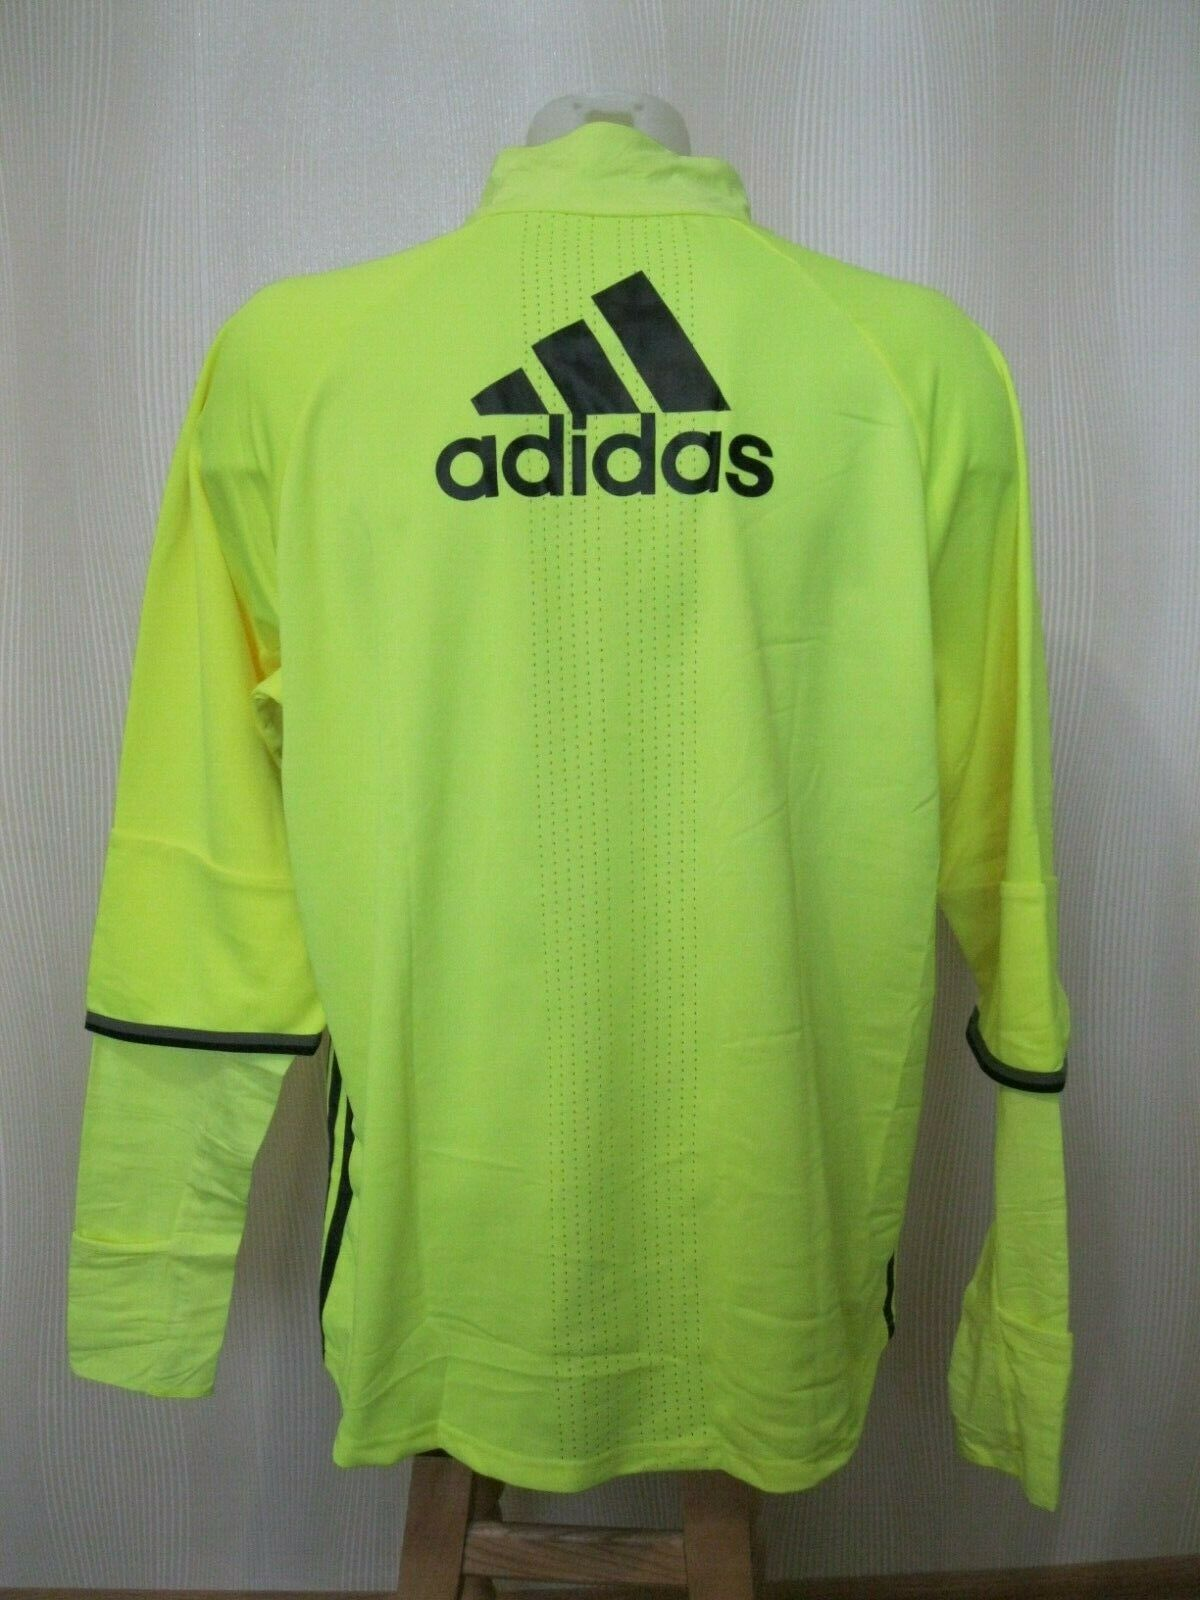 Chelsea London 2016/2017 Size 2XL Training Top Adidas AP5636